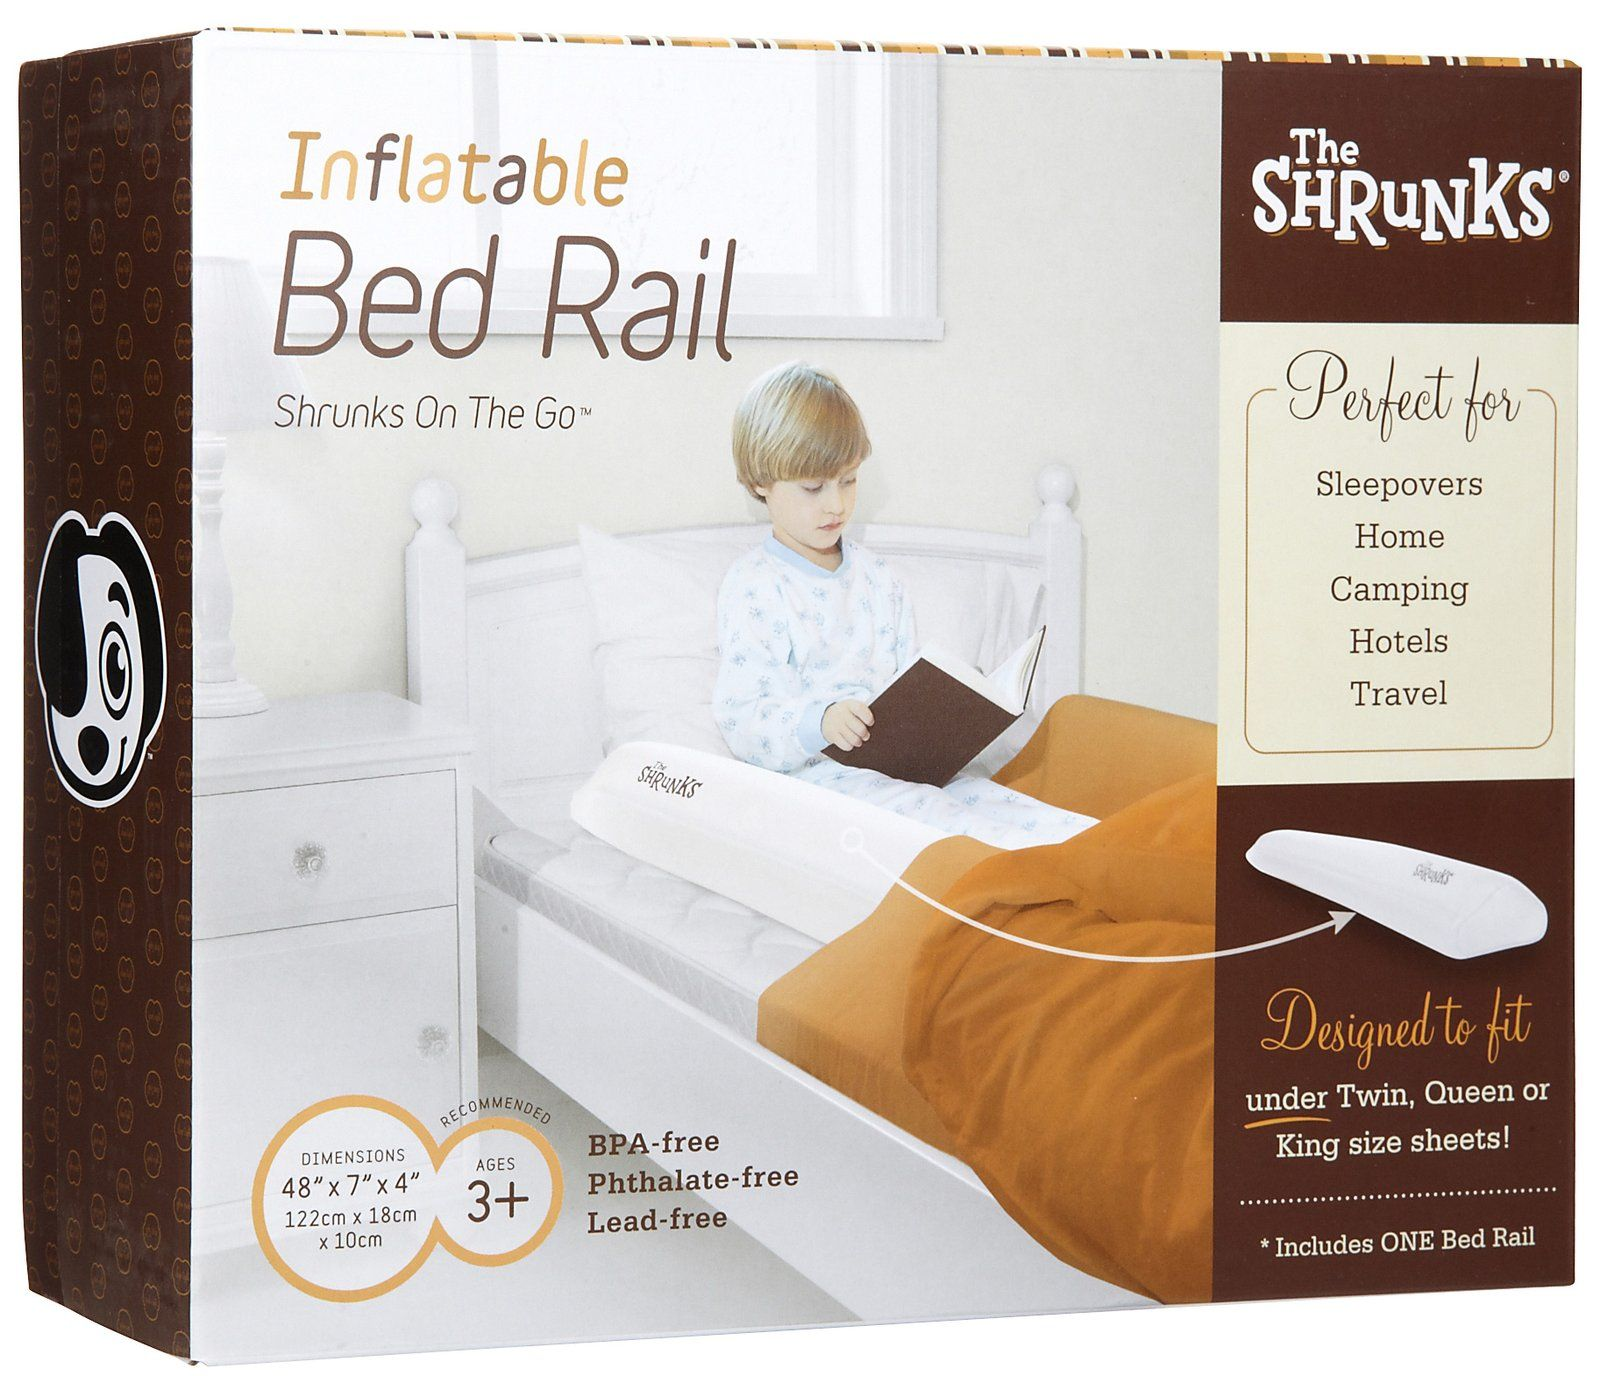 2012 Baby Travel Gear Guide Sleeping From Inflatable Bed Rail ShrunksInflatable Shrunks